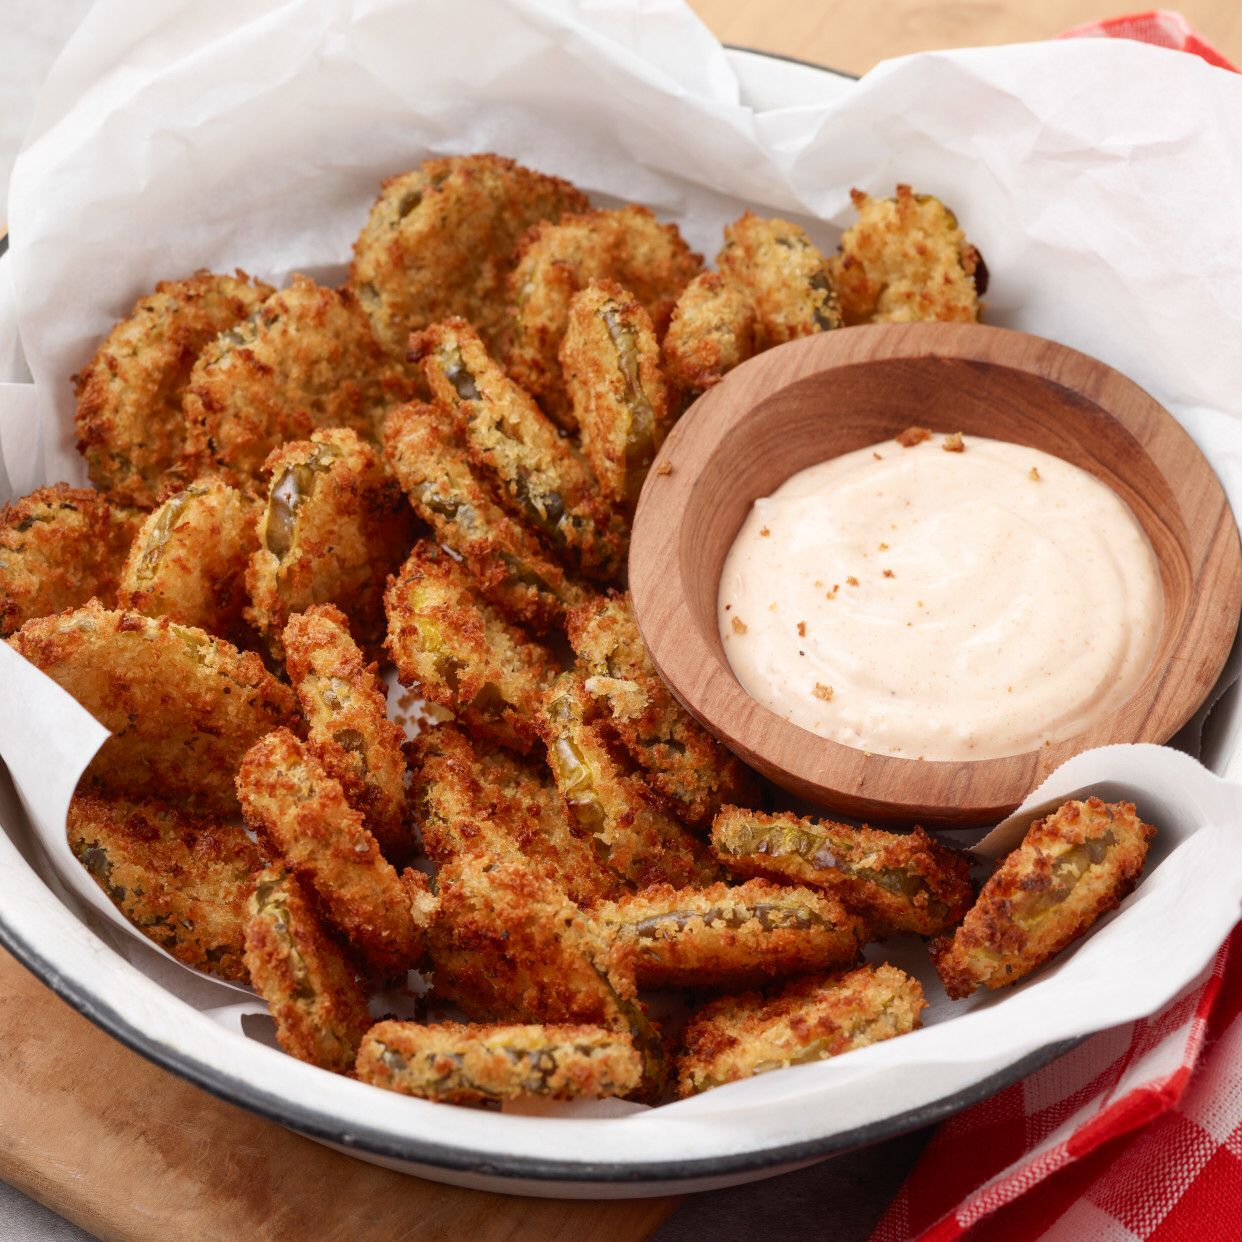 Air Fryer Fried Pickles Recipe Air fryer recipes, Food